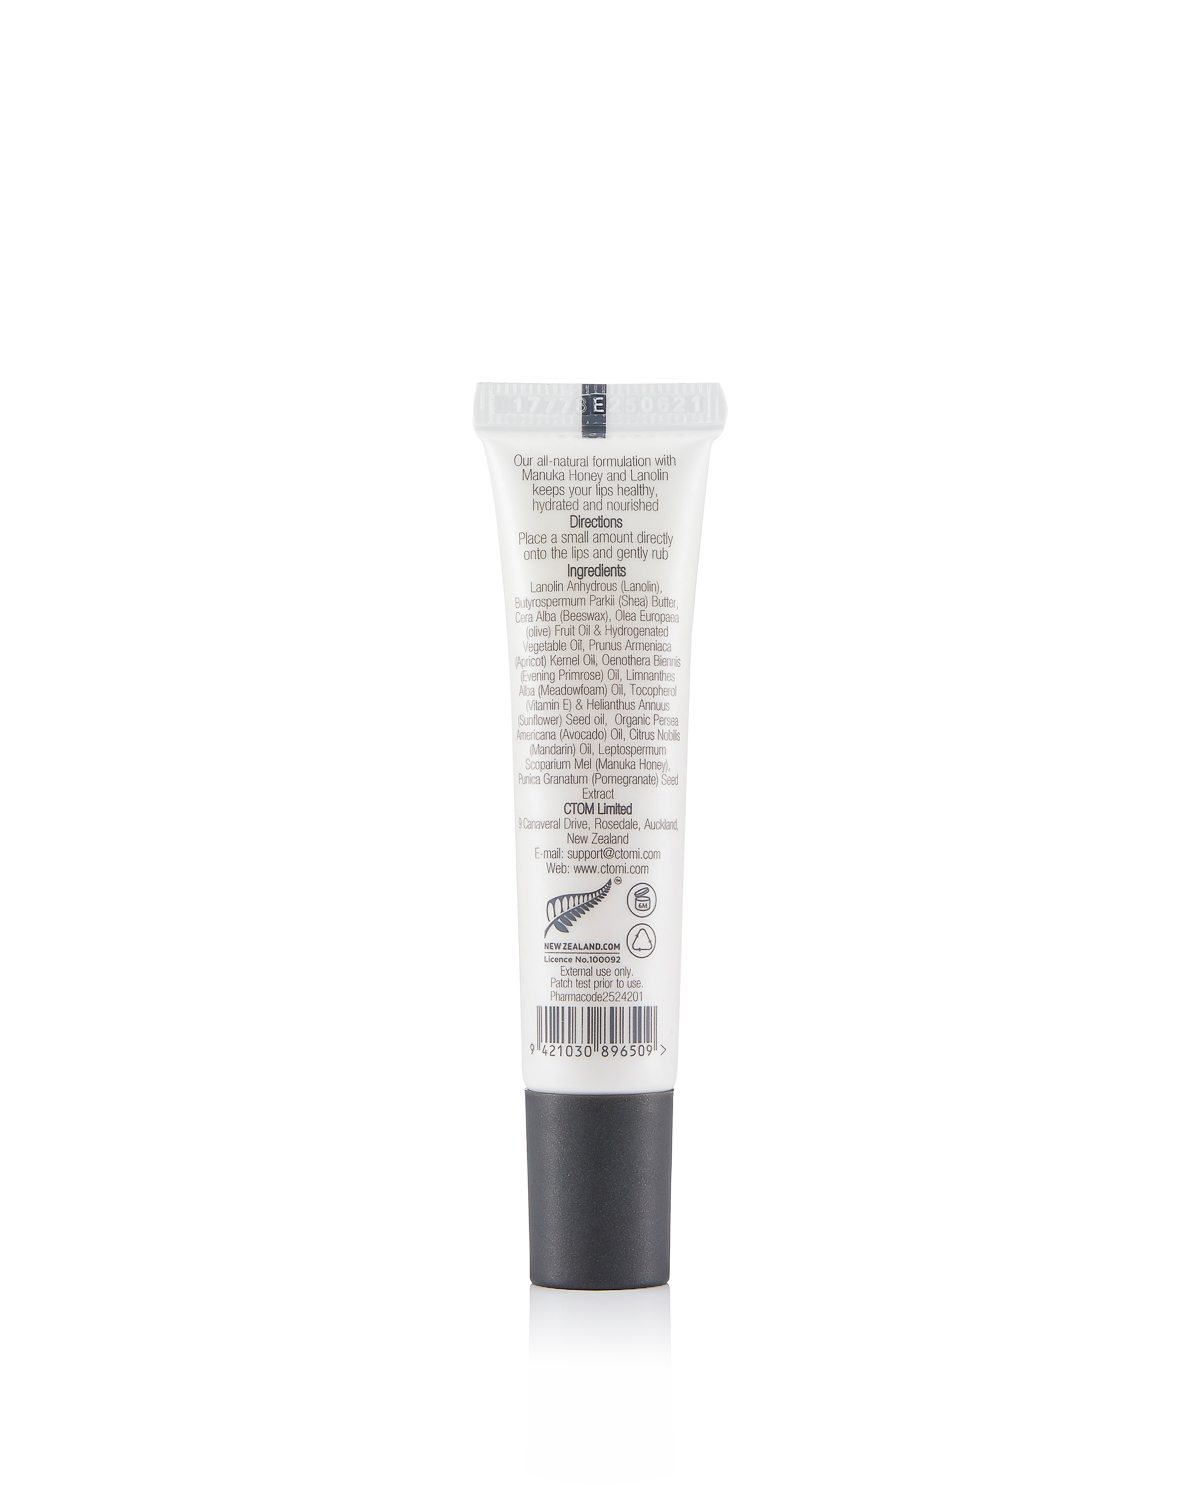 RELIEVE MANUKA & LANOLIN LIP BALM